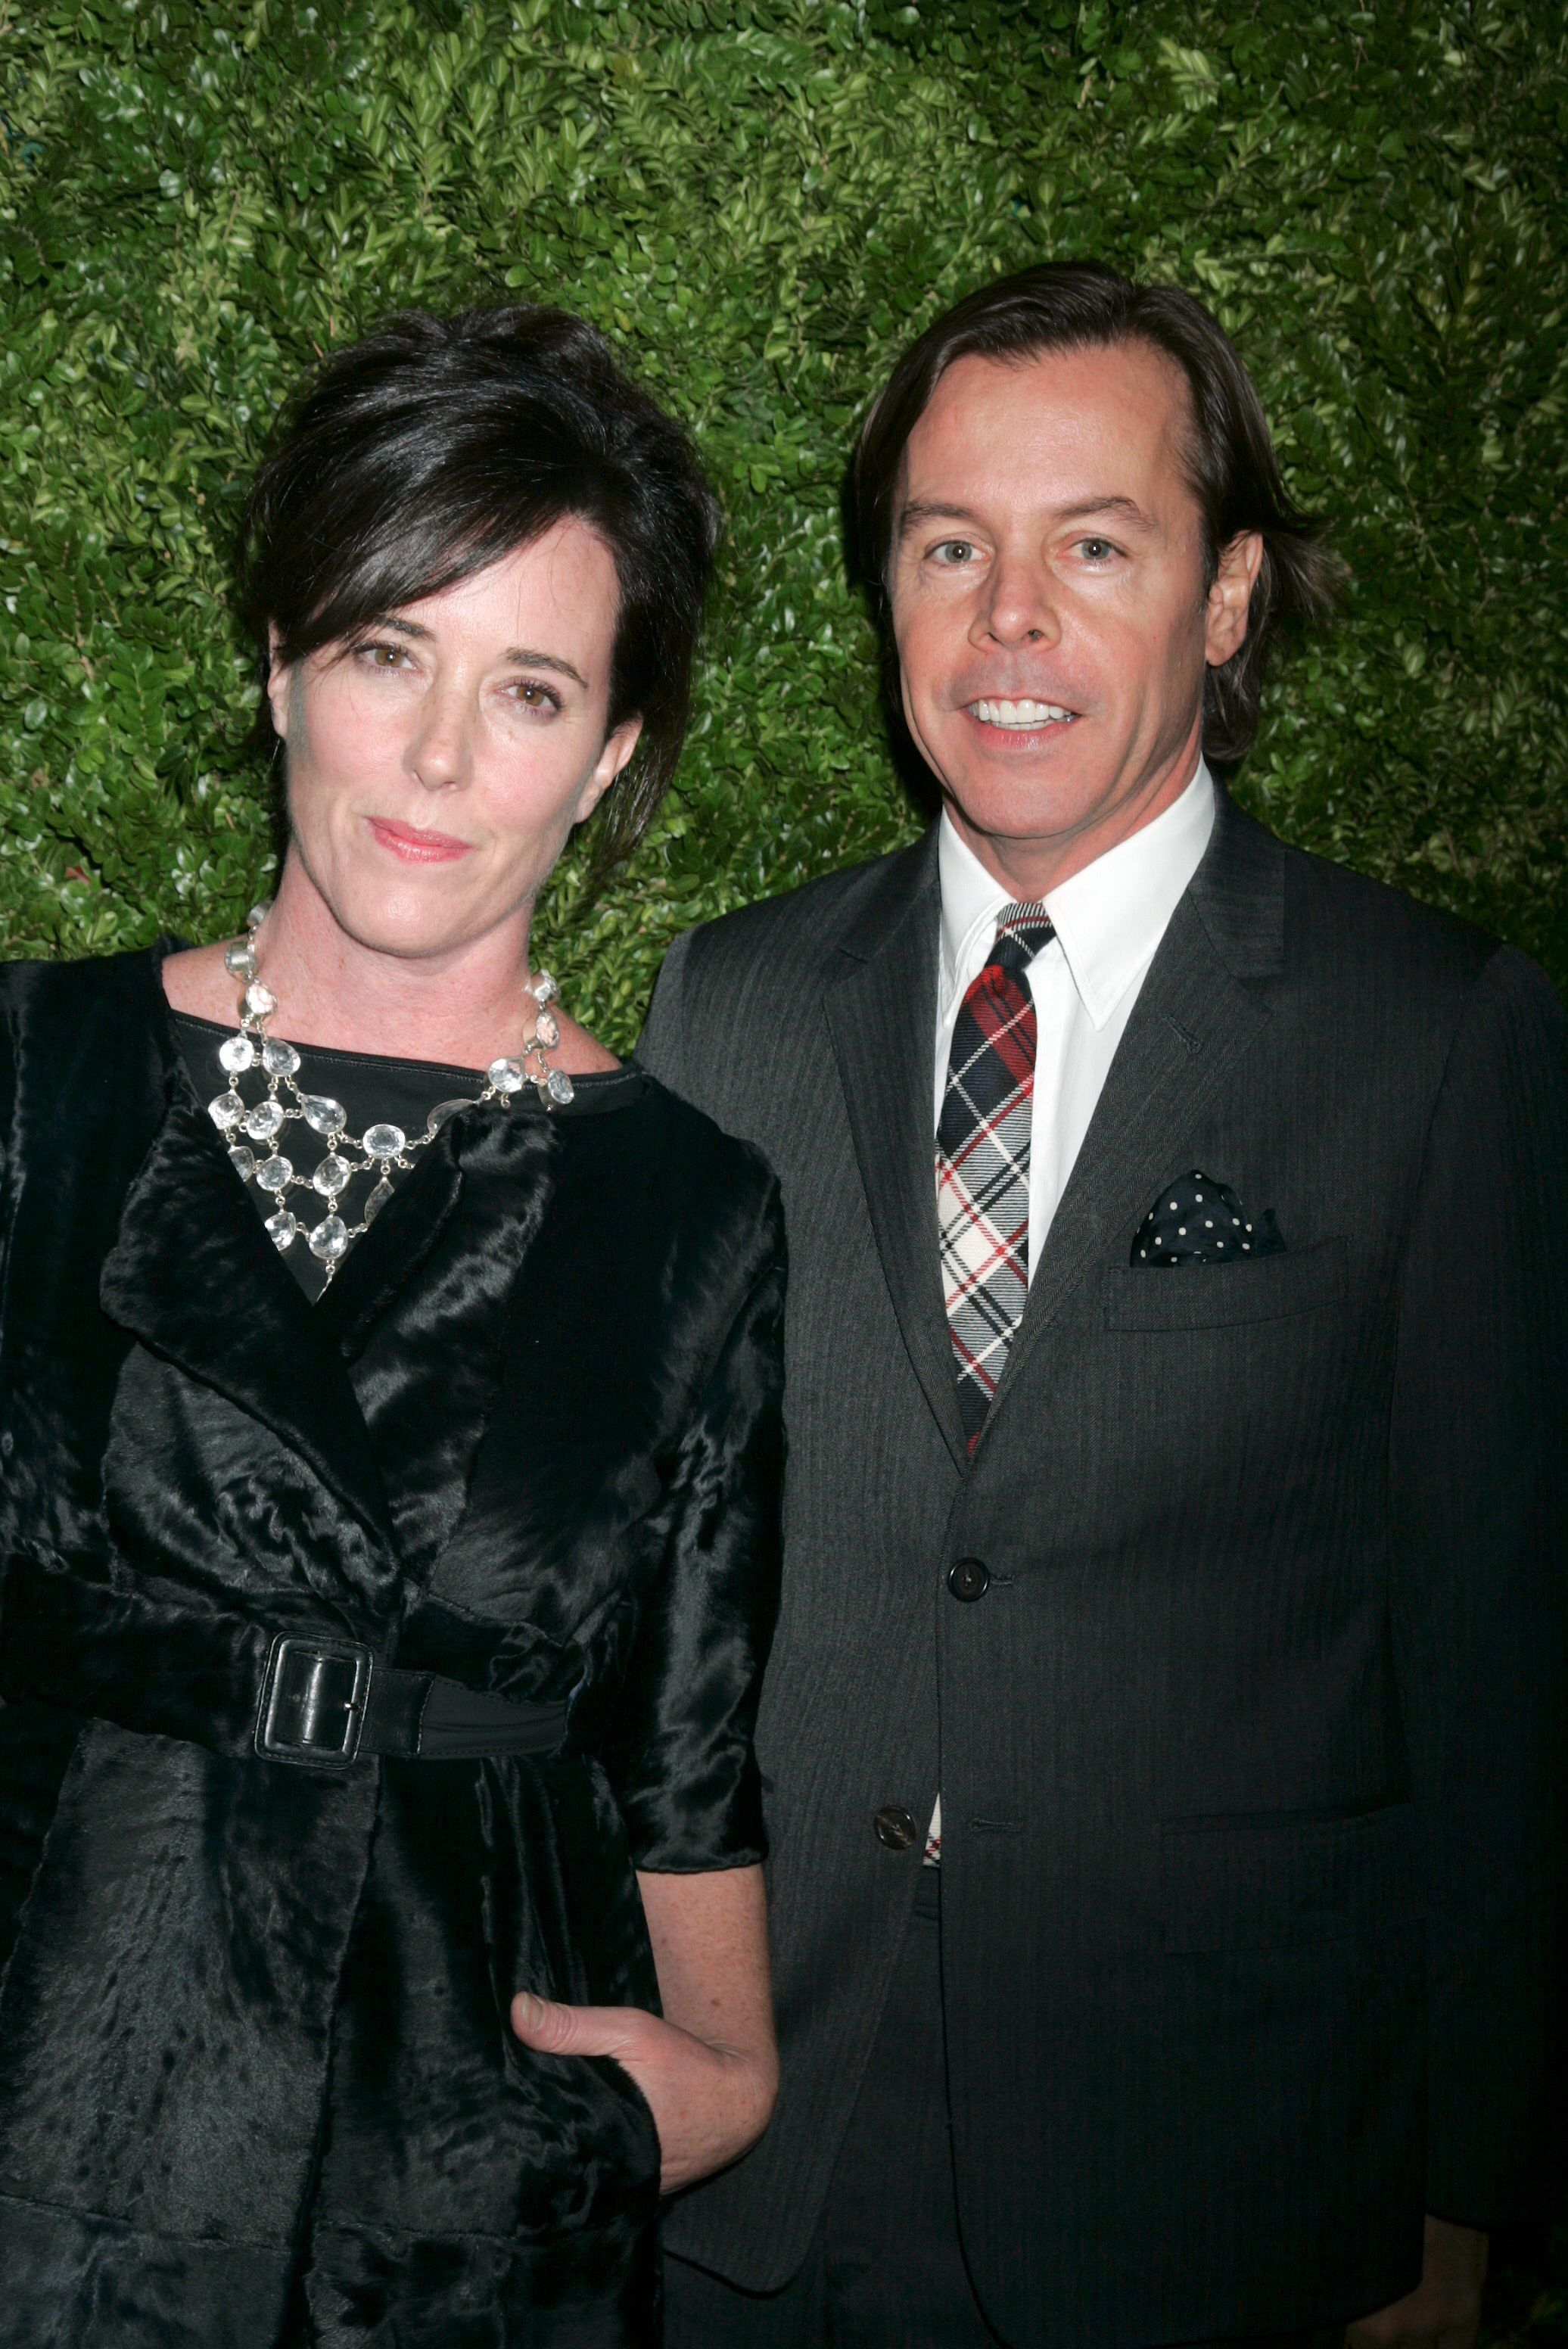 "<div class=""meta image-caption""><div class=""origin-logo origin-image none""><span>none</span></div><span class=""caption-text"">Kate Spade and Andy Spade at the CFDA/Vogue Fashion Fund in New York in 2008 (Gregory Pace/BEI/REX/Shutterstock)</span></div>"